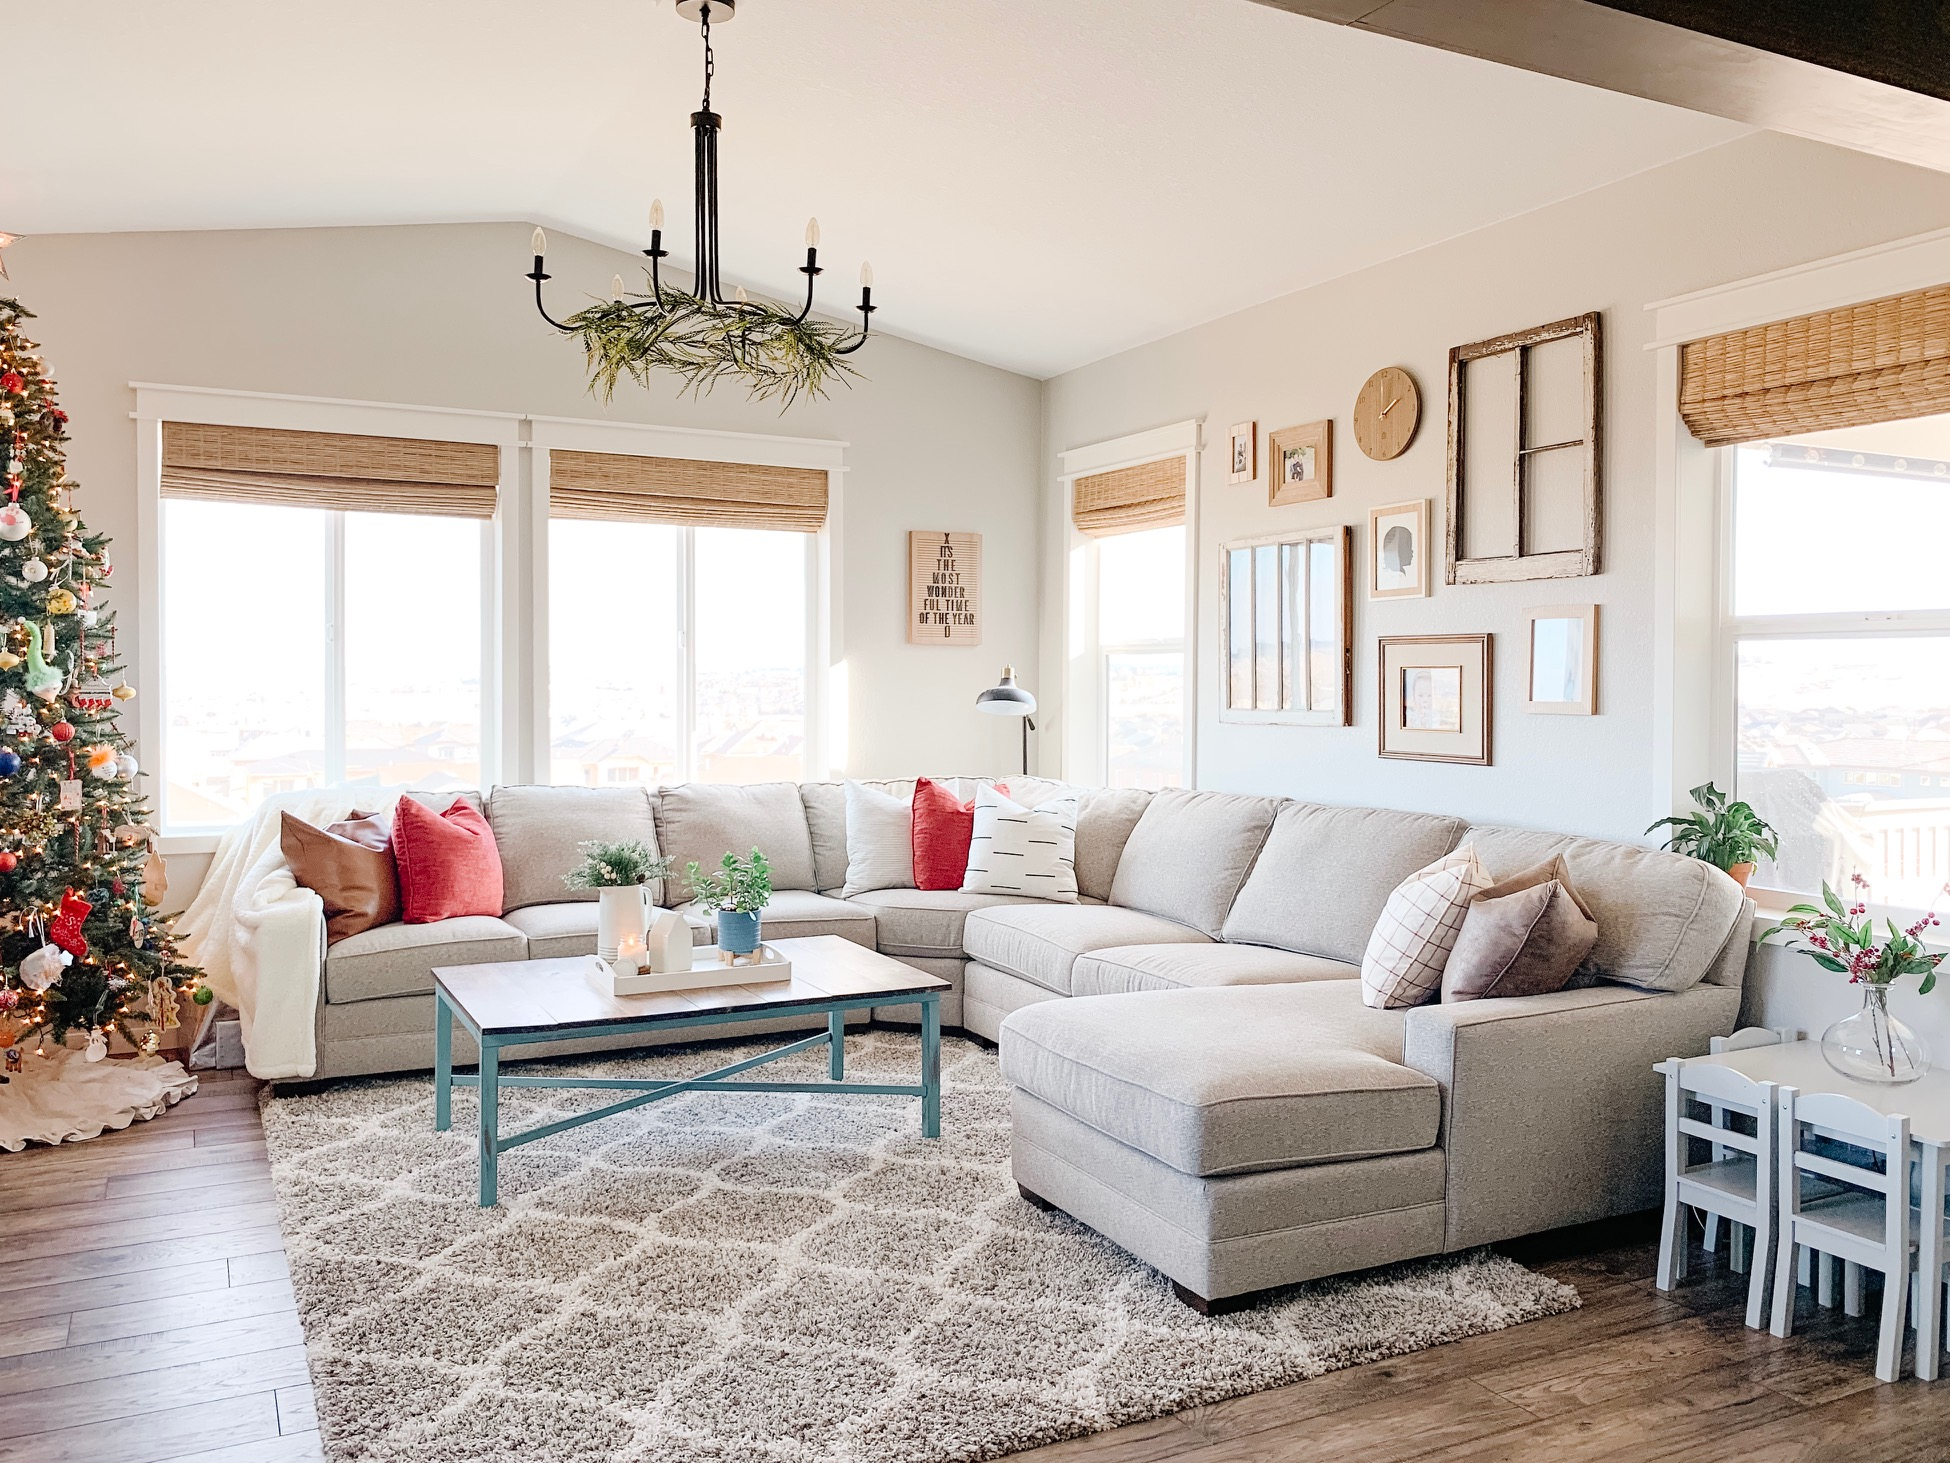 Woodley's Fine Furniture Review of our King Hickory Sectional in Living Room